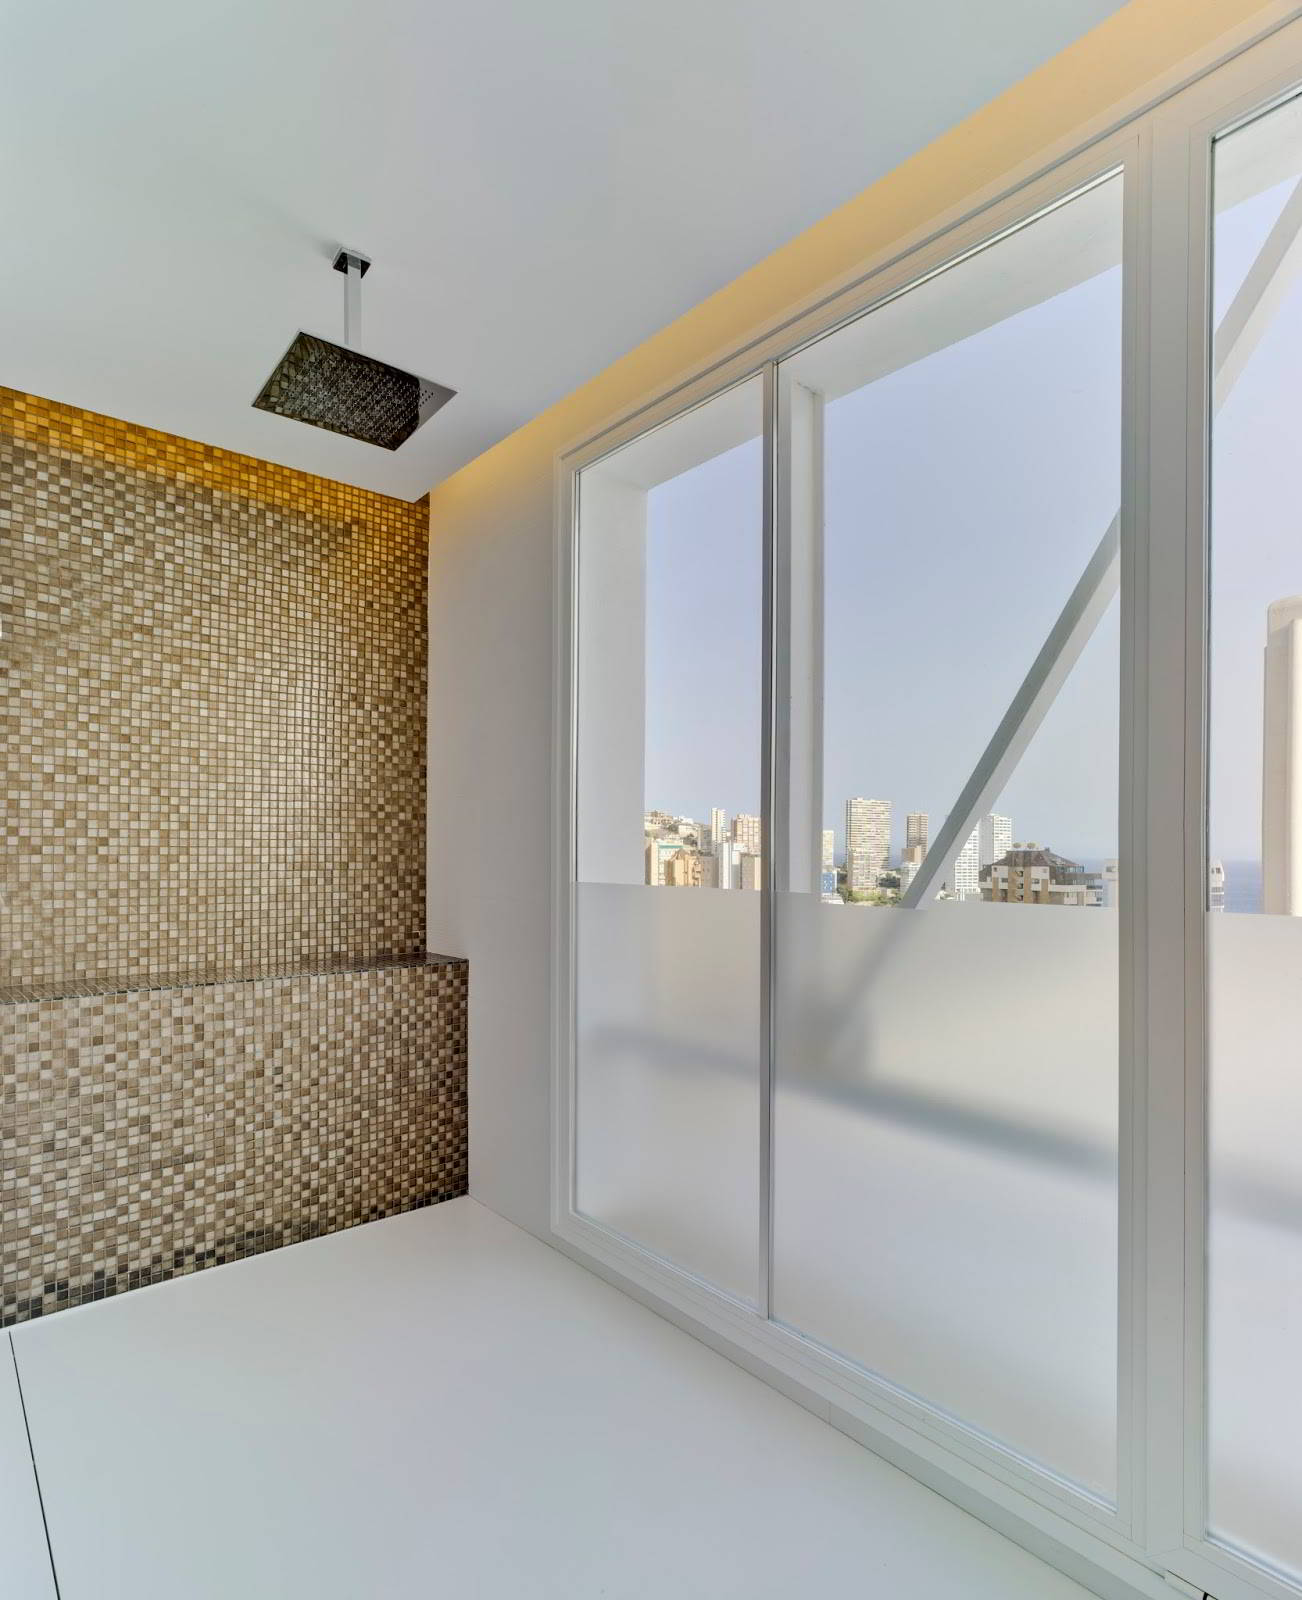 infinity shower at out penthouse room